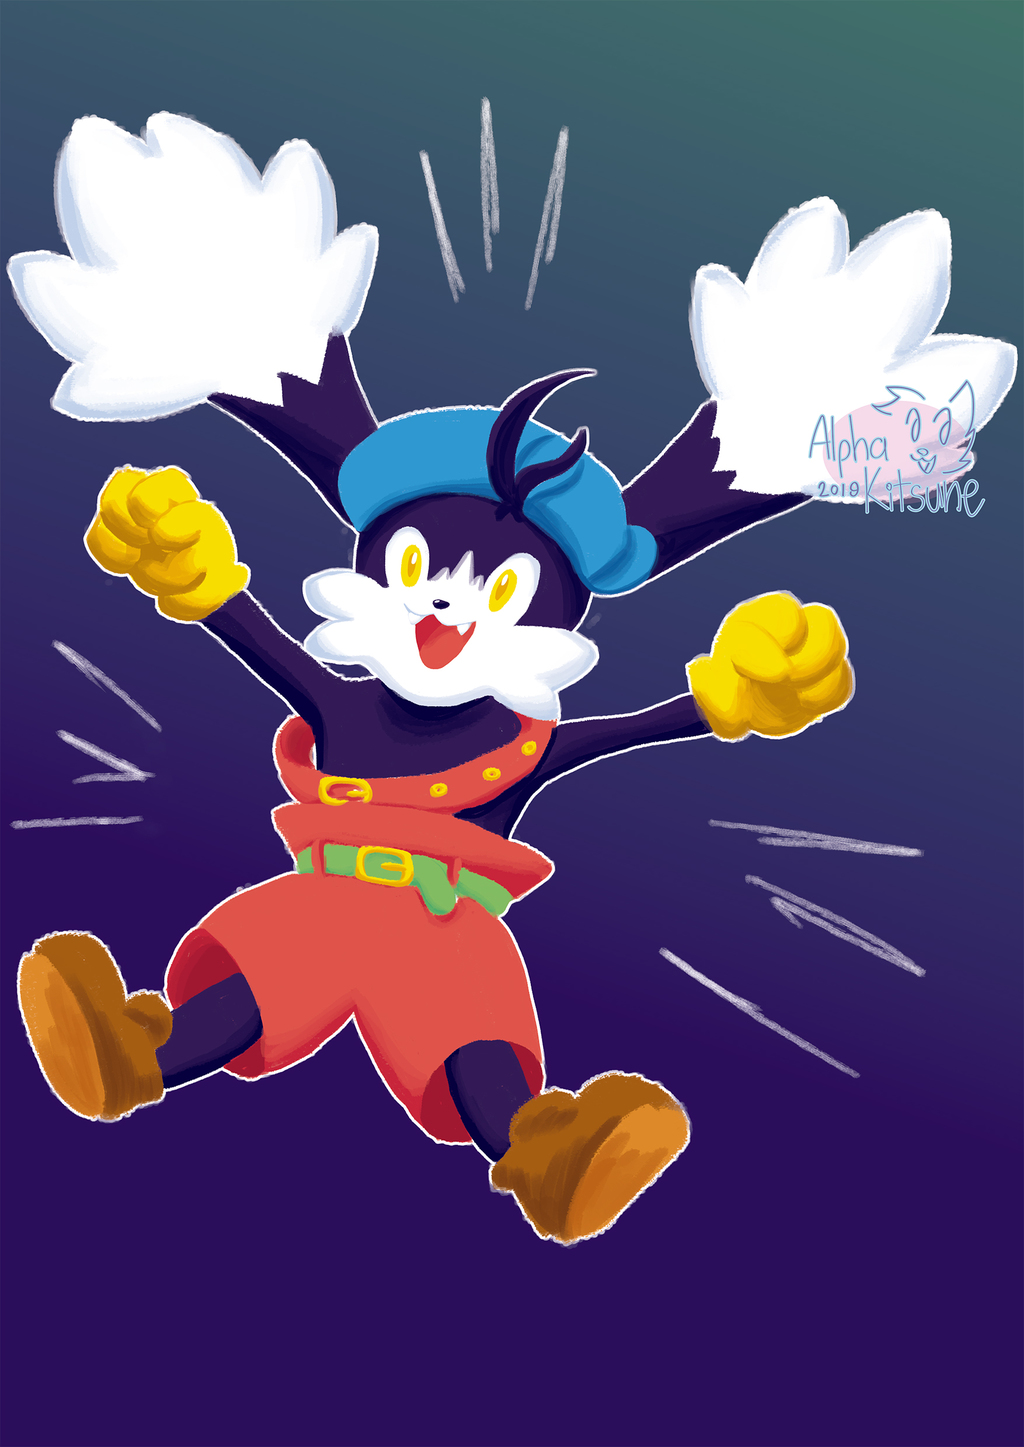 Most recent image: Klonoa Lineless WAHOO!